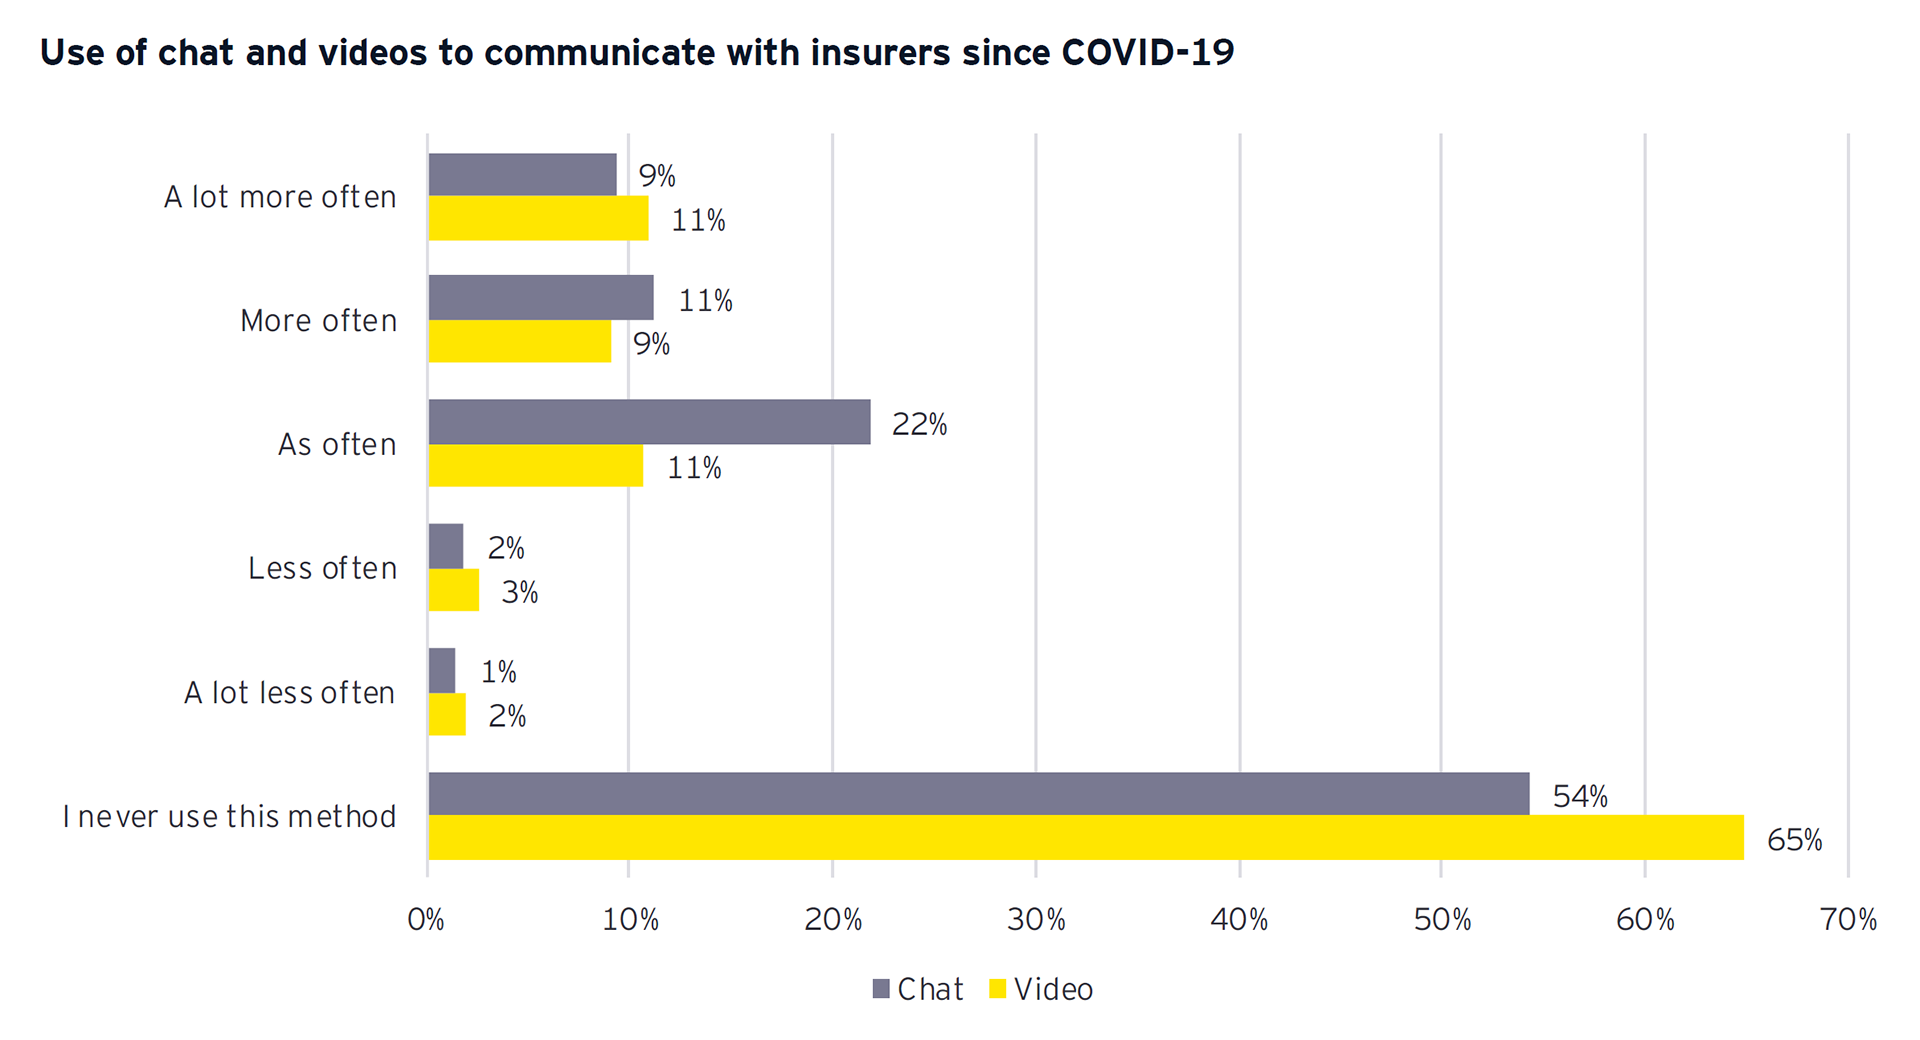 Graph: Use of chat and videos to communicate with insurers since COVID-19